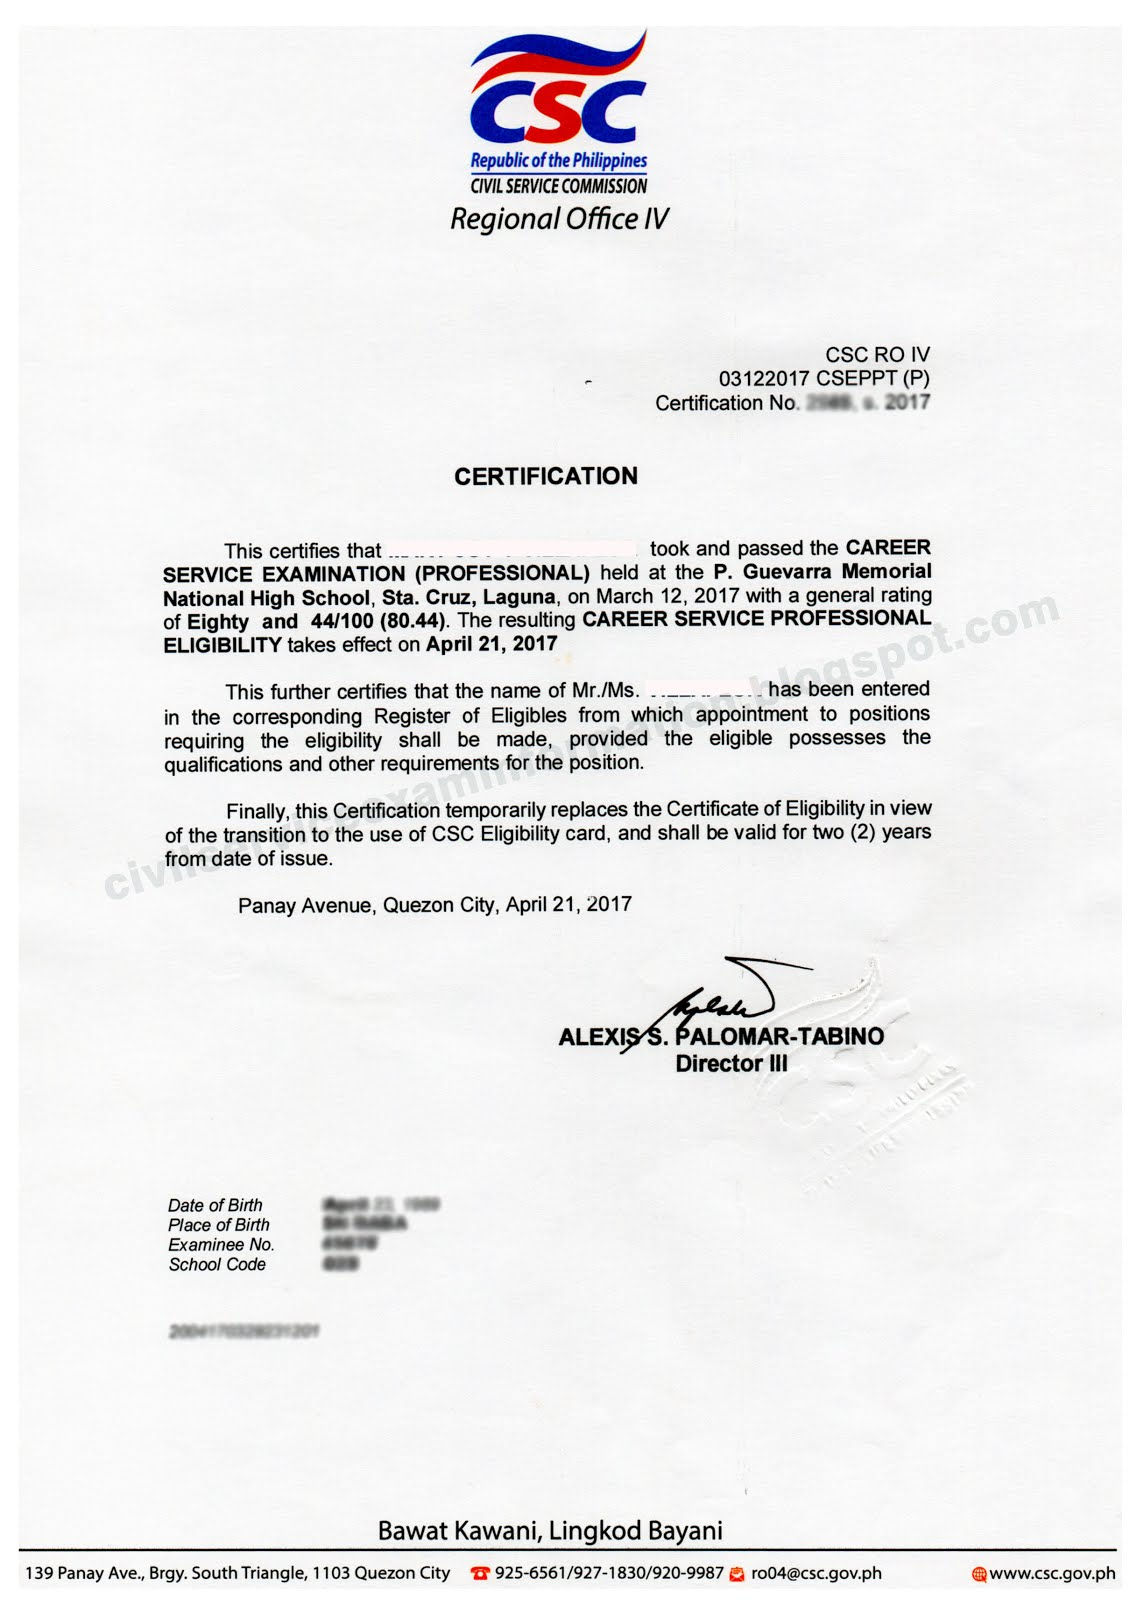 Civil service exam ph how to claim certificate of eligibility this is free of charge given to all civil service exam passers valid for 2 years from the date of issuance printed on csc letterhead and cannot be aiddatafo Gallery